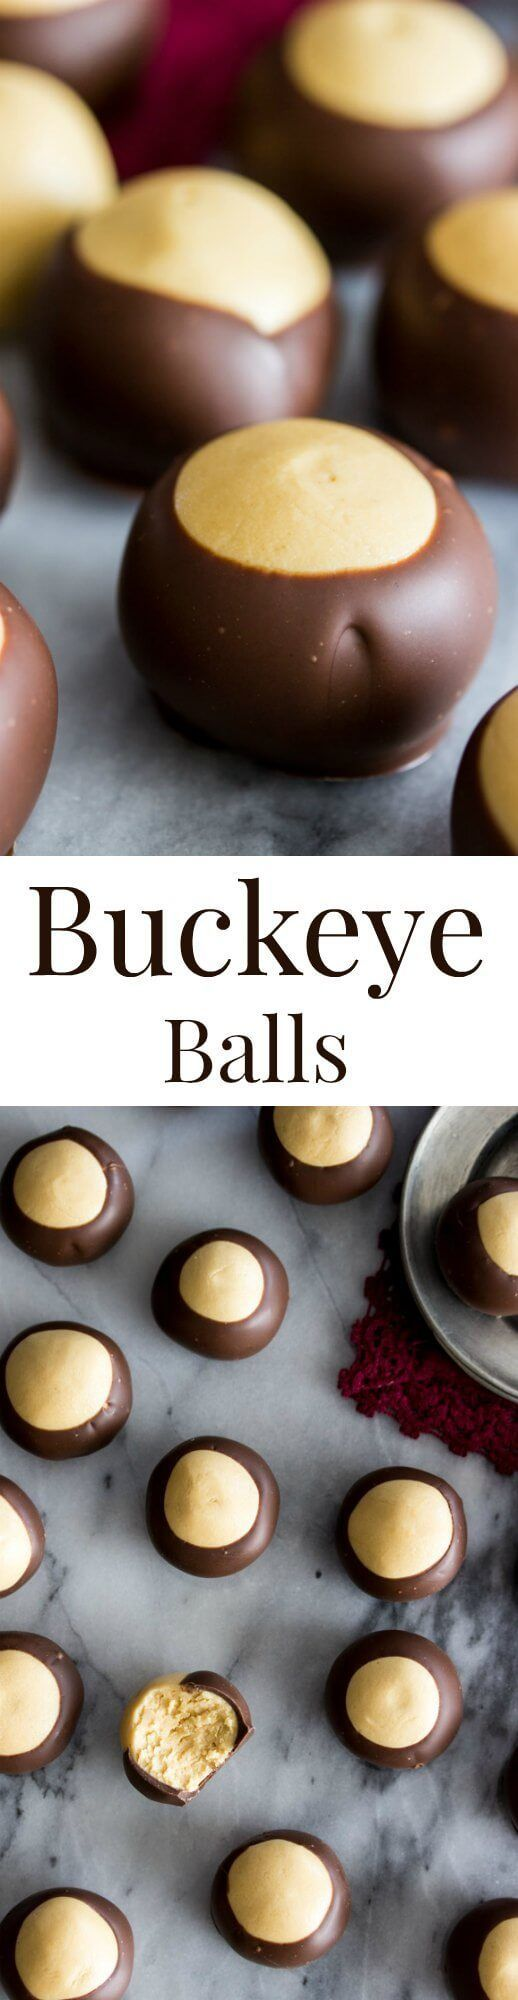 Easy Buckeye Recipe via @sugarspunrun